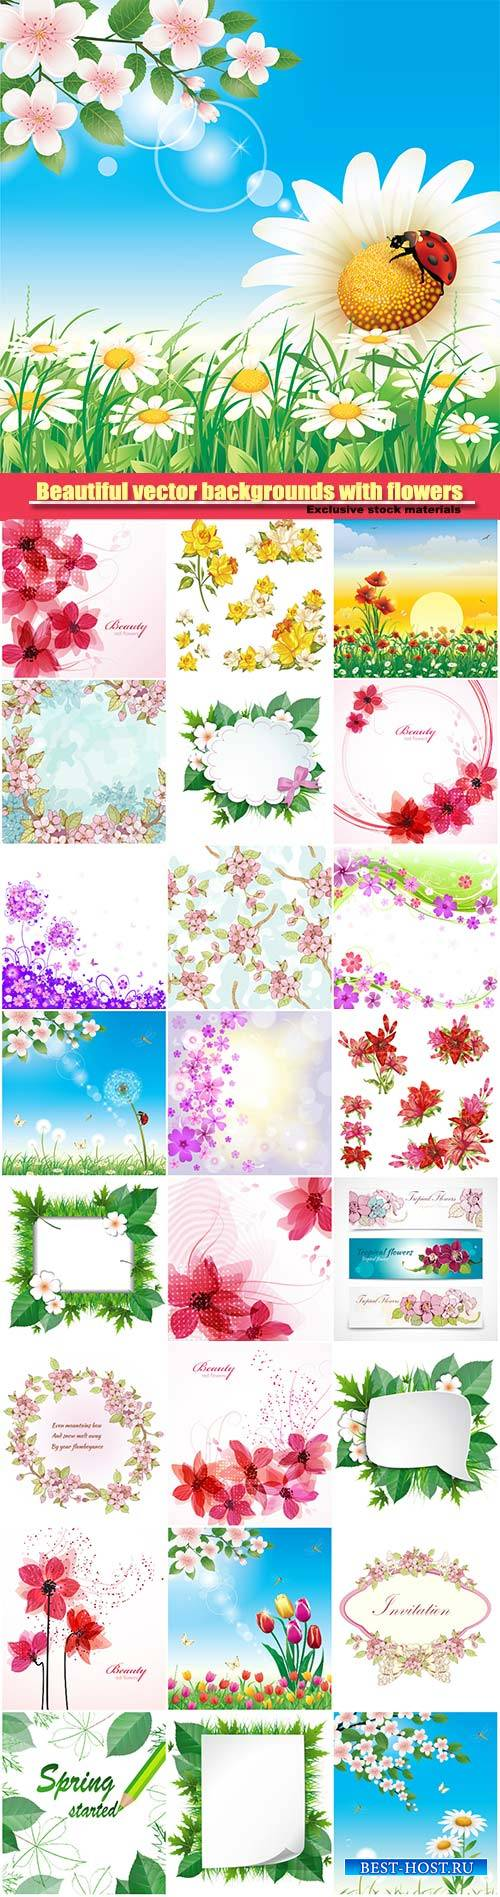 Beautiful vector backgrounds with different flowers